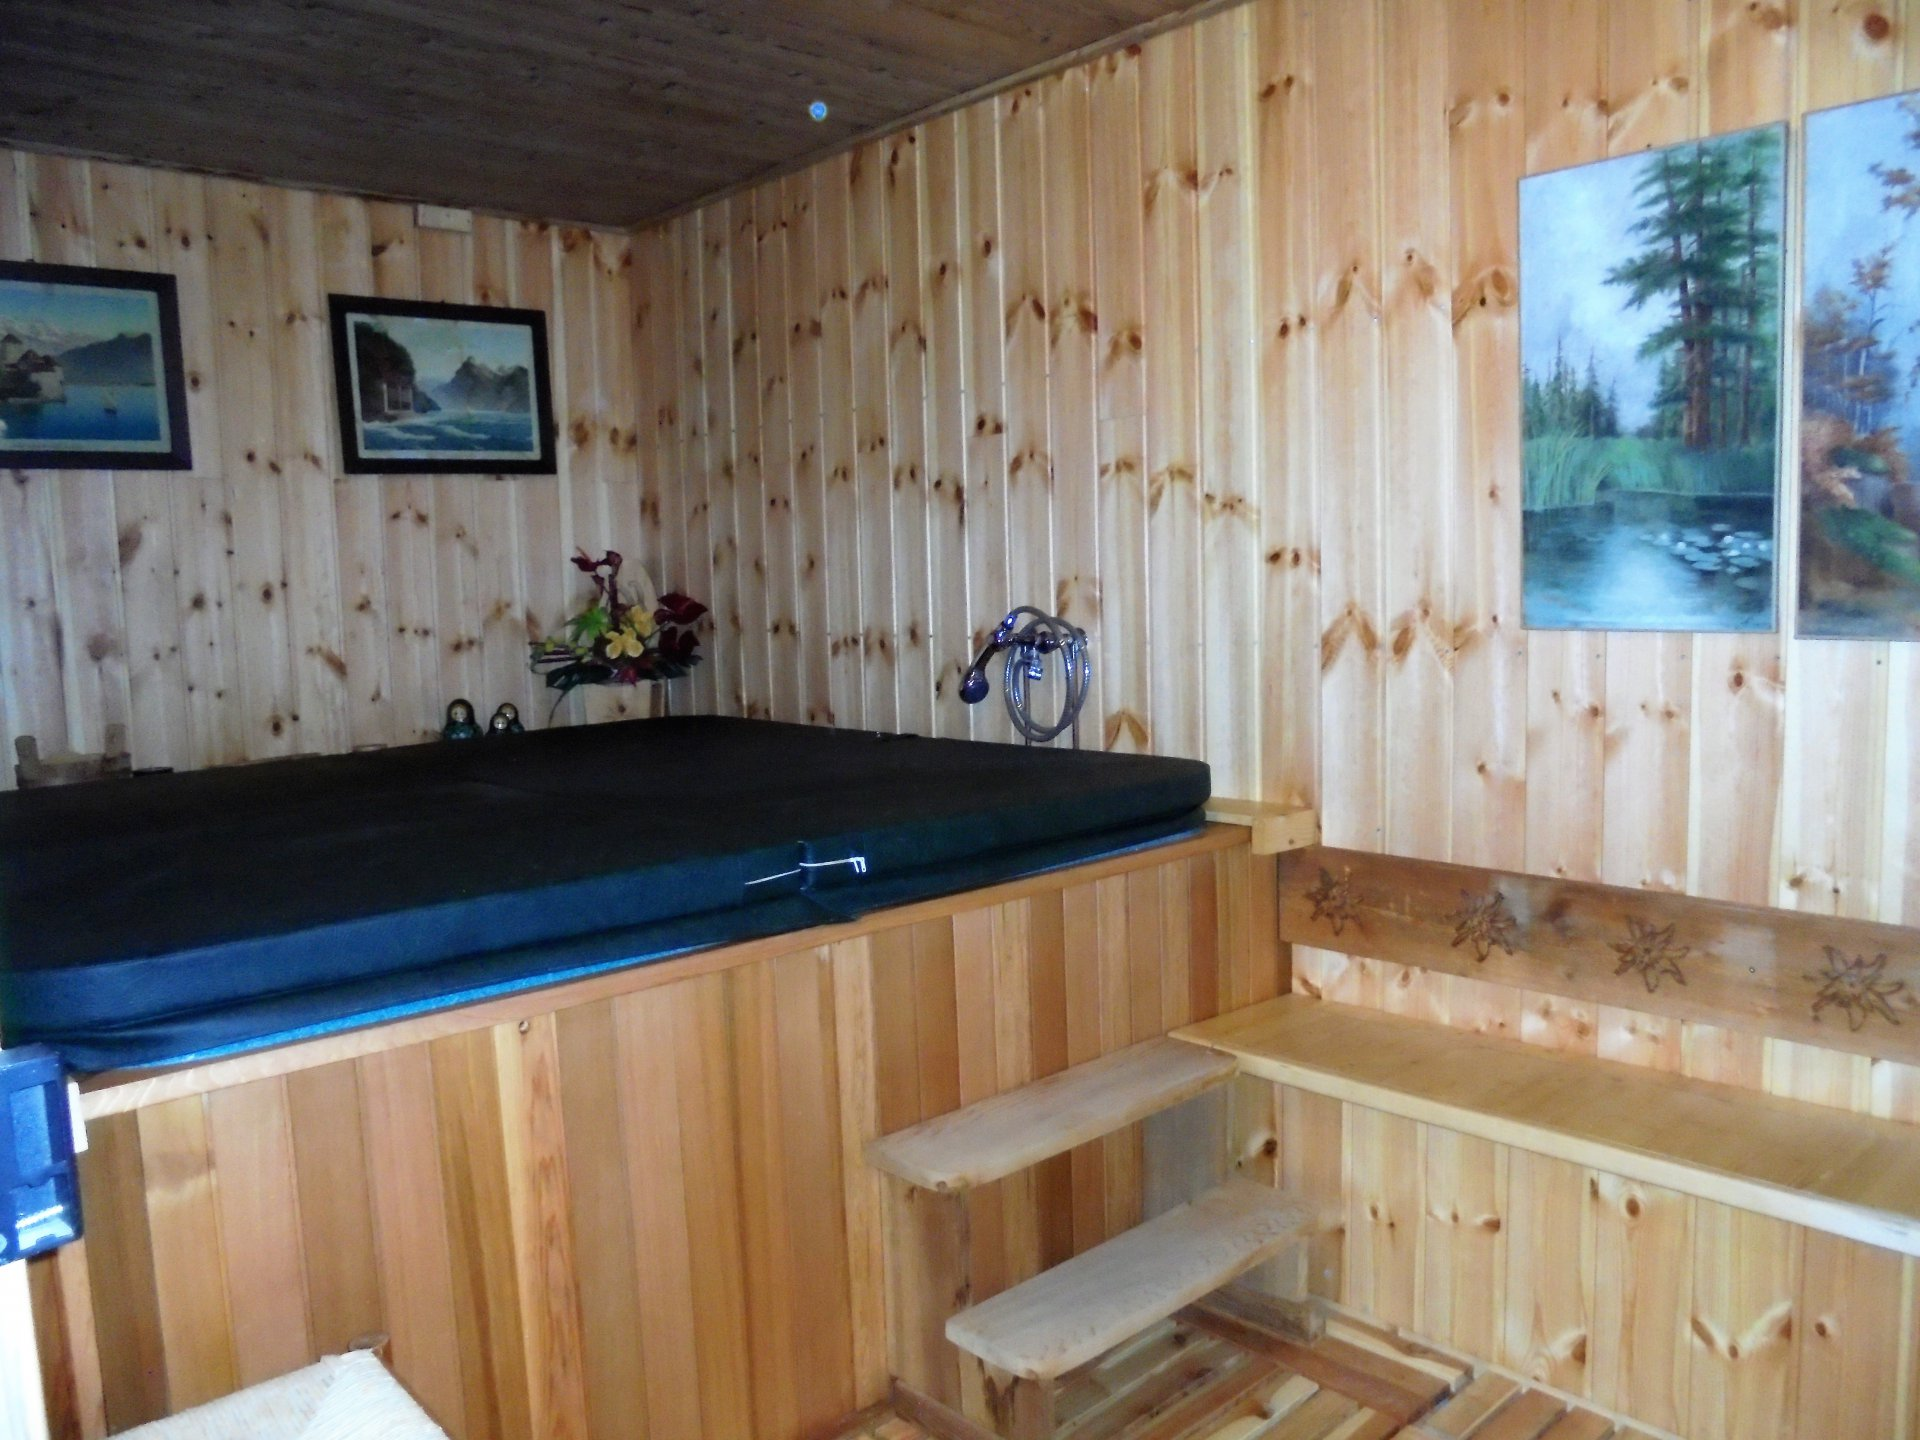 GRAND CHALET SKIS AUX PIEDS